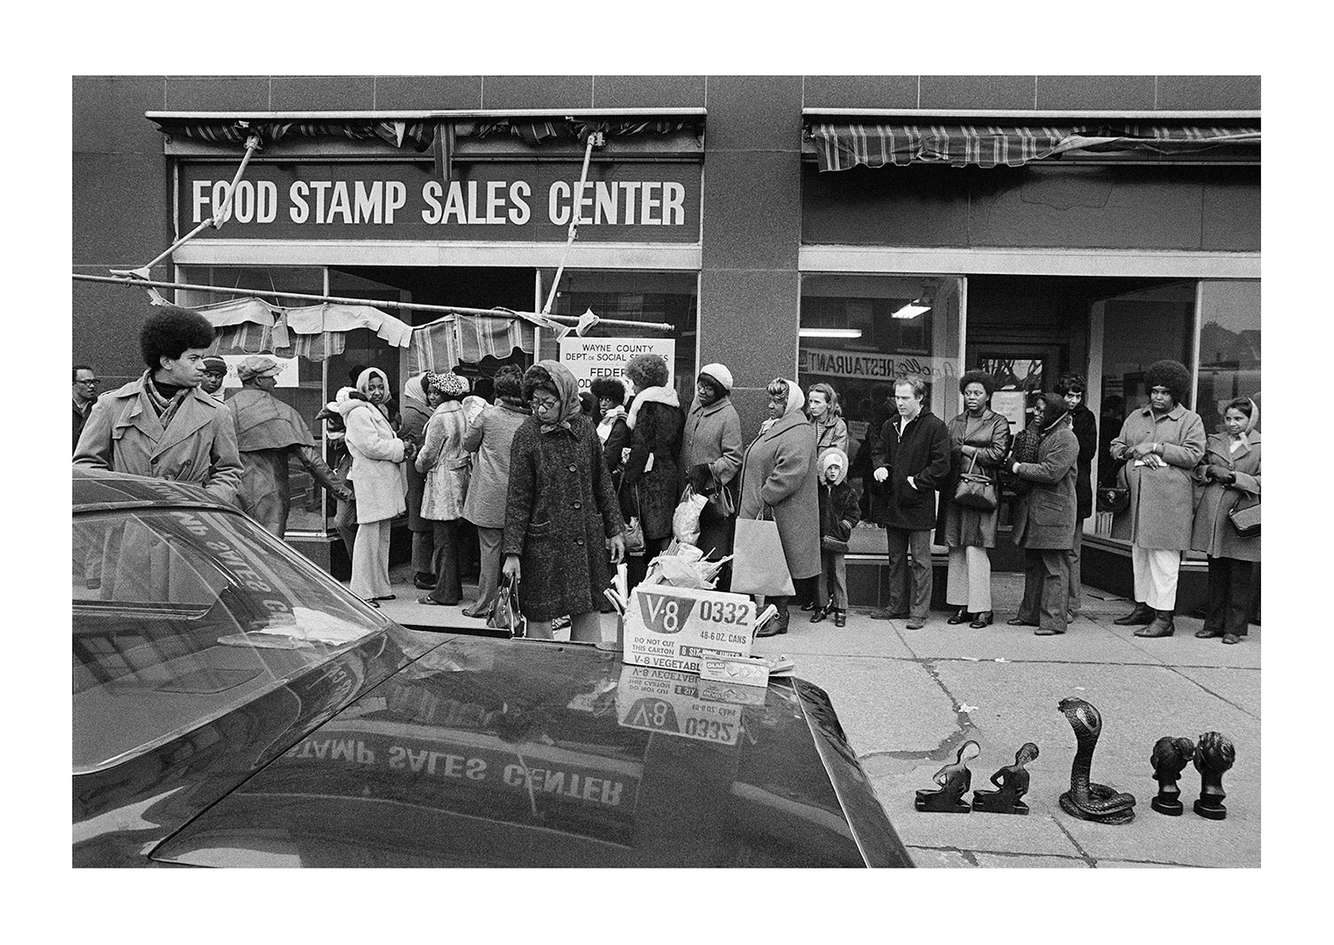 People Waiting in Line for Food Stamps, Detroit 1972